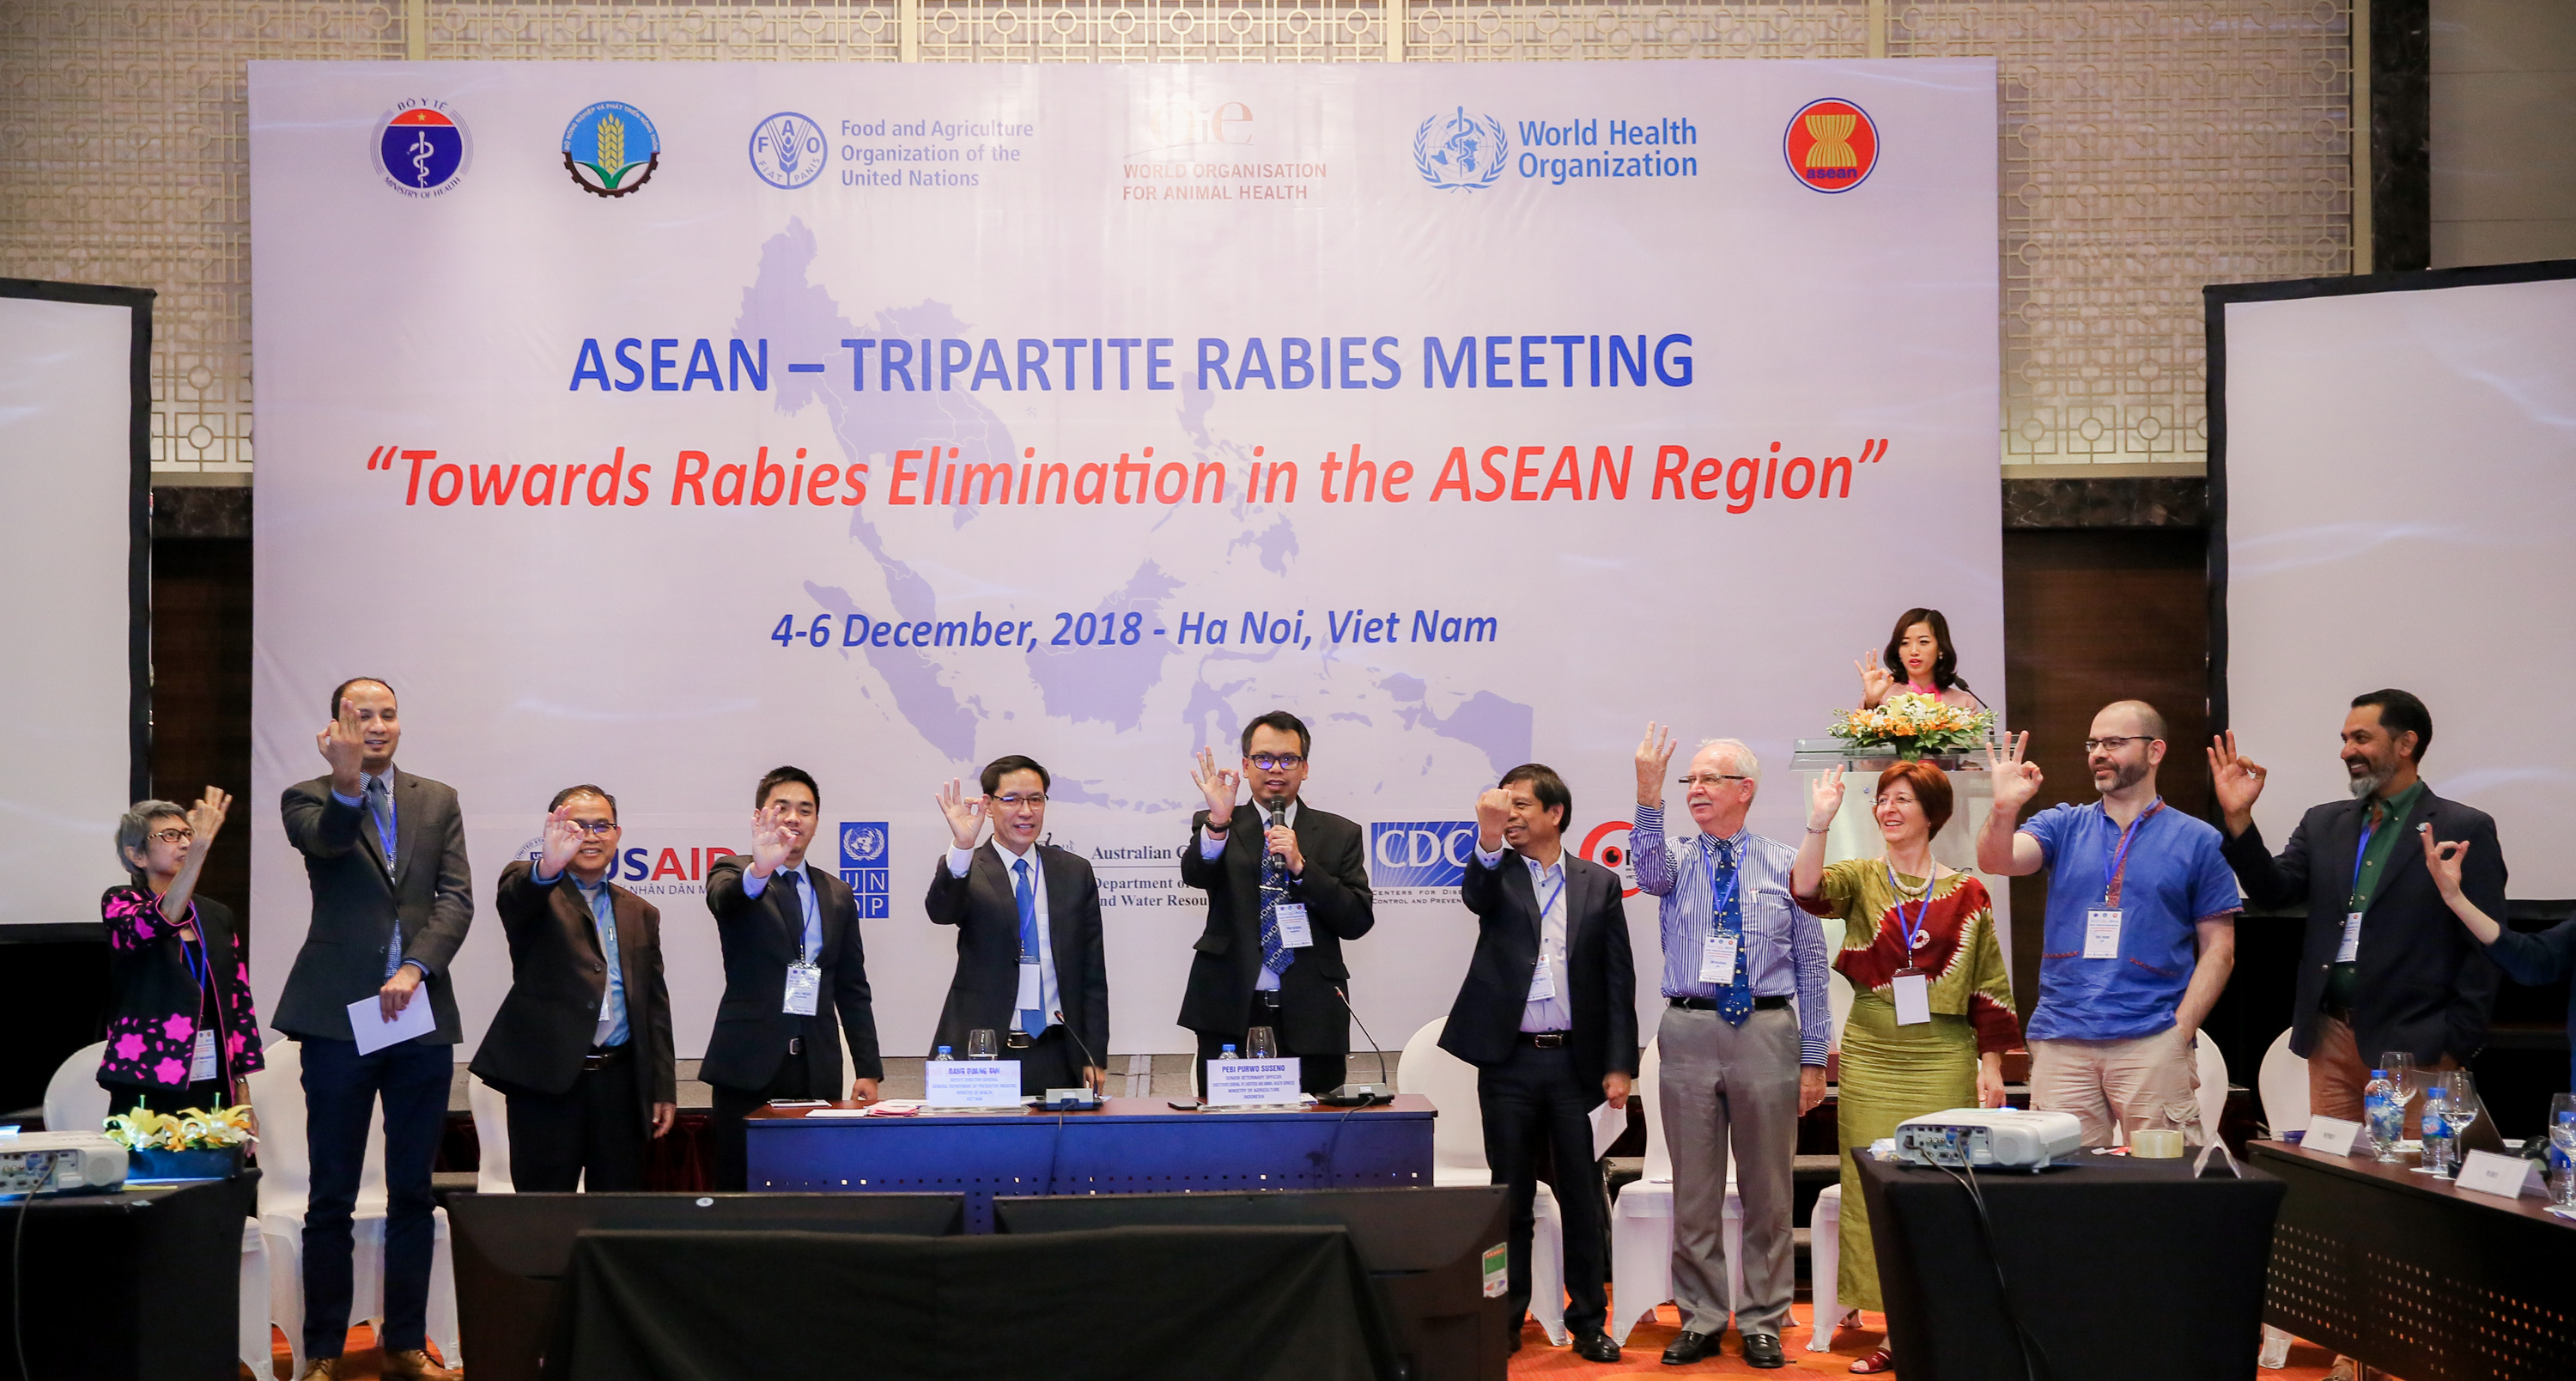 ASEAN countries, partners to scale up rabies elimination efforts